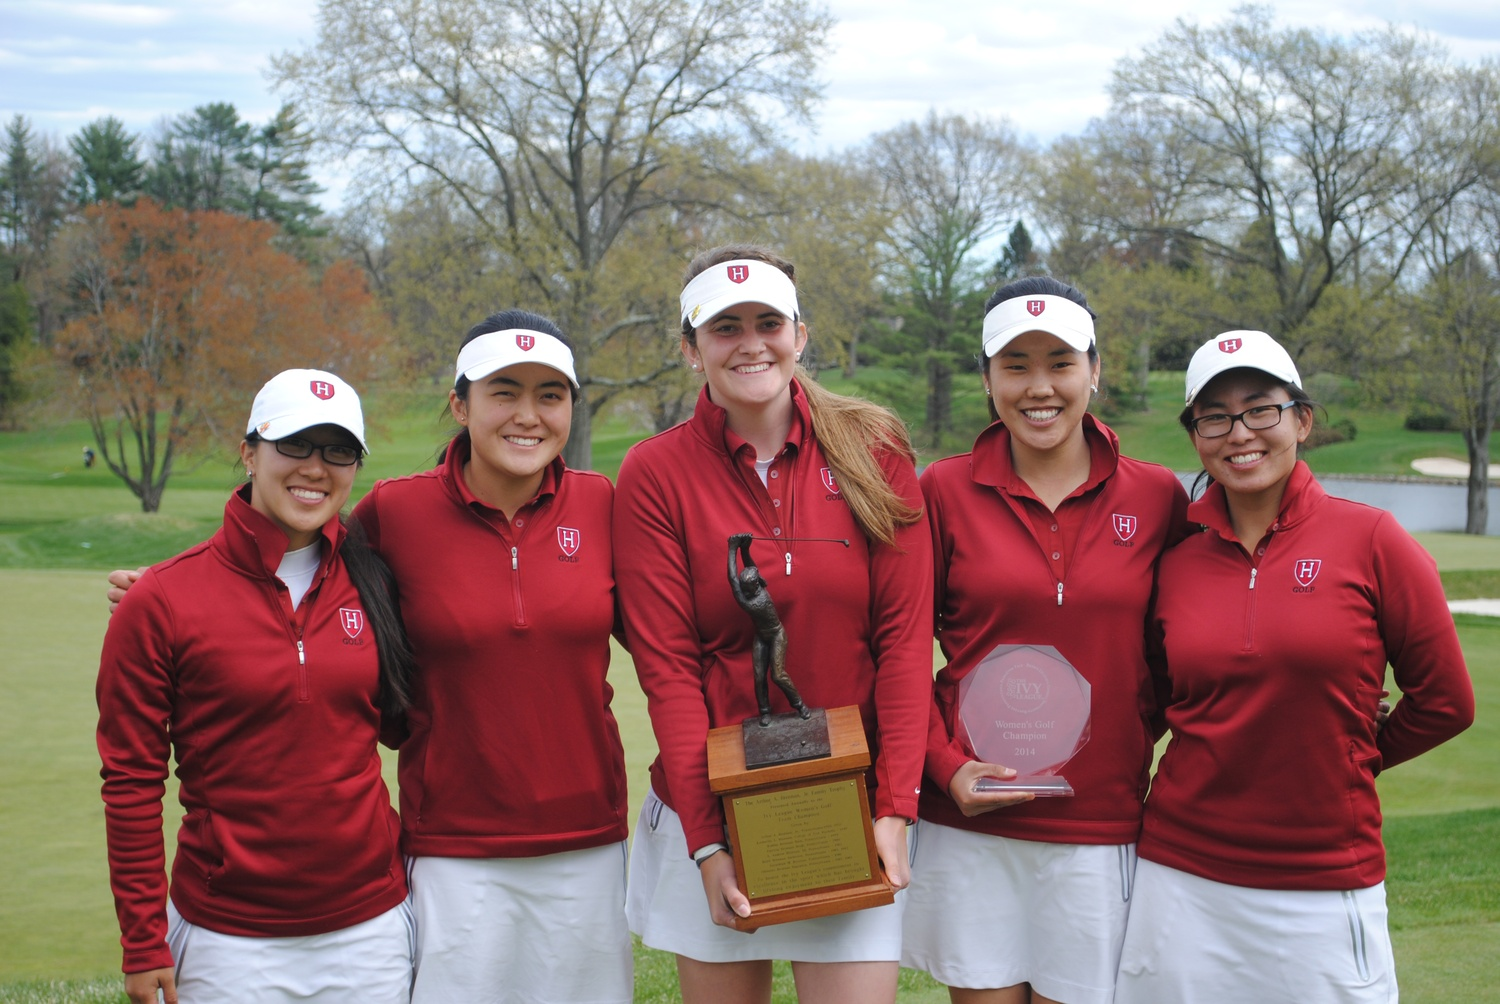 The Harvard women's golf team, pictured after its third-straight Ivy title win in 2014, became the first squad in Ancient Eight golf history to capture four-straight Ivy League titles this year under Crimson coach Kevin Rhoads.